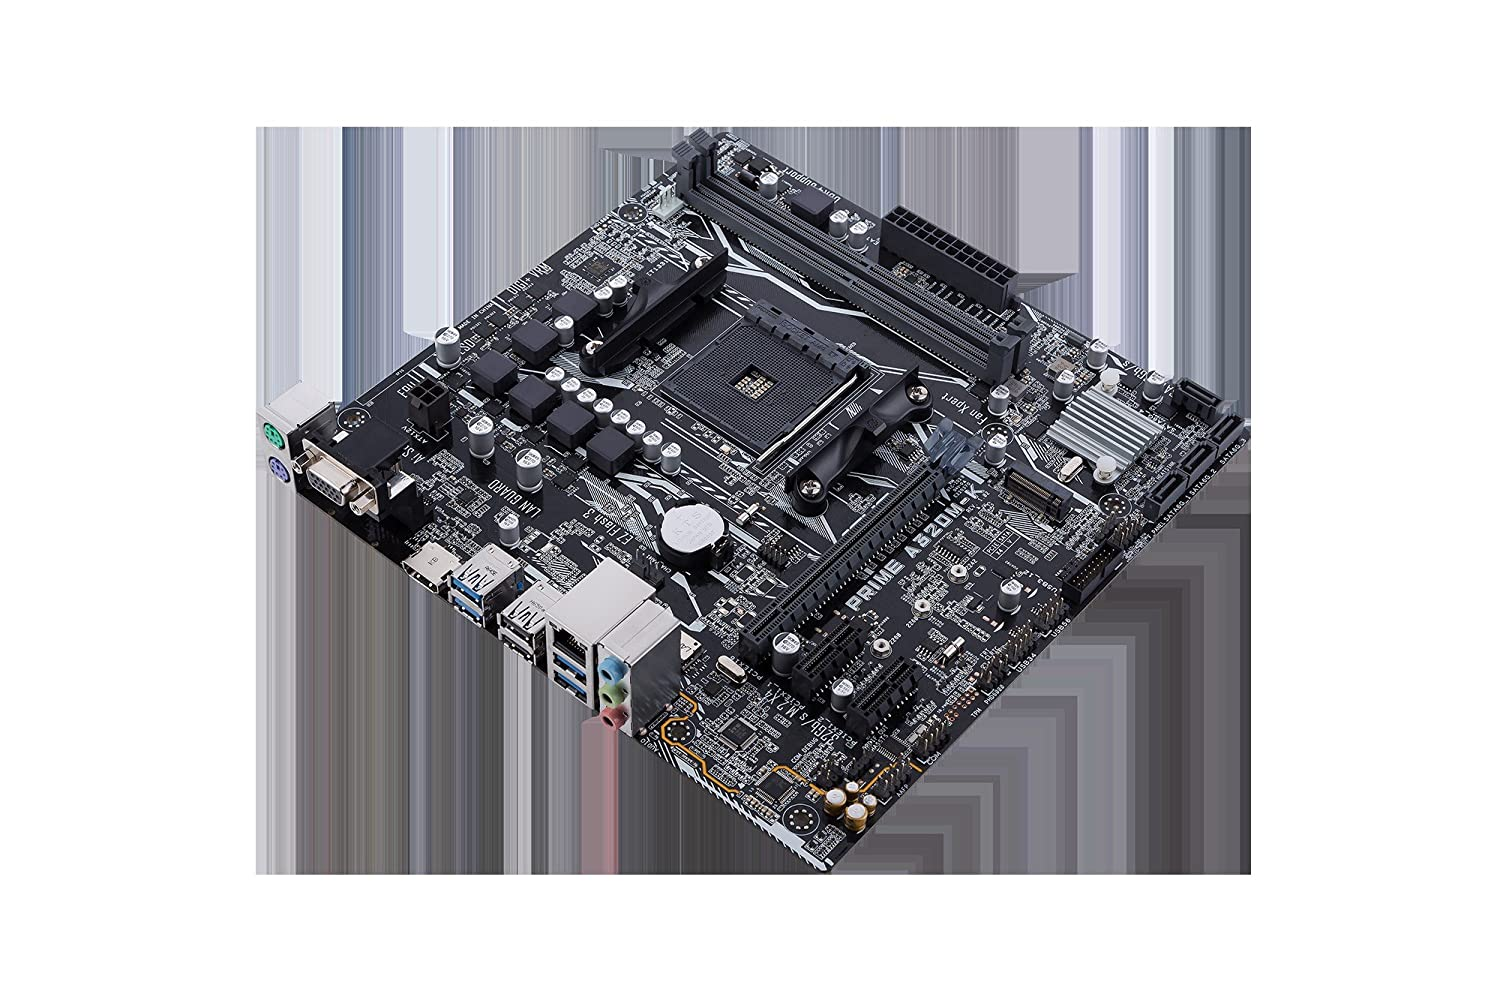 placa base para PC Gaming 600 euros